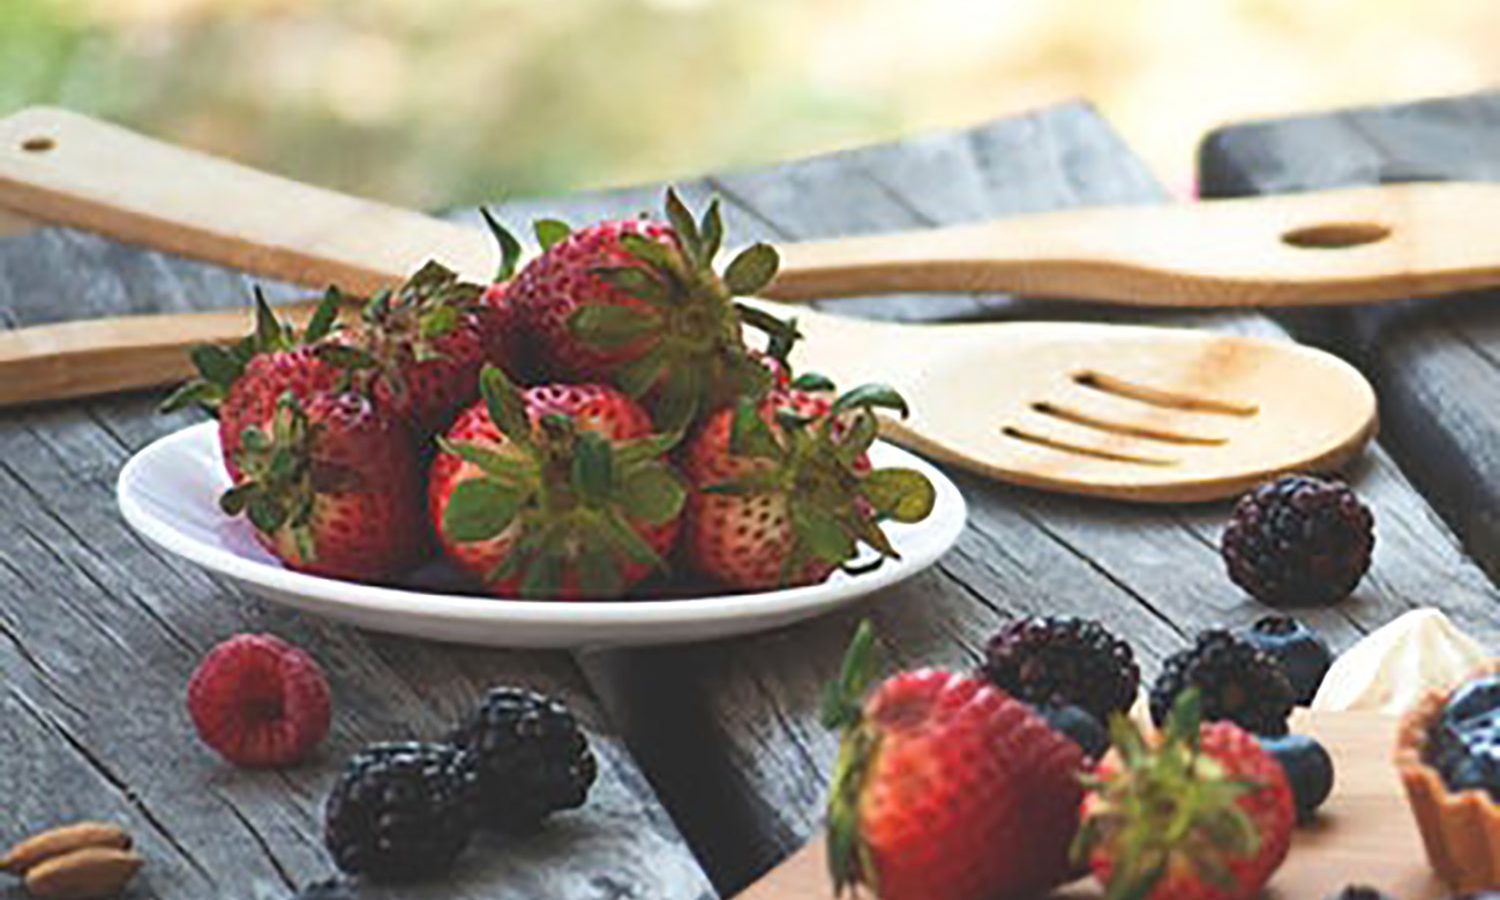 Strawberries and blackberries on a picnic table